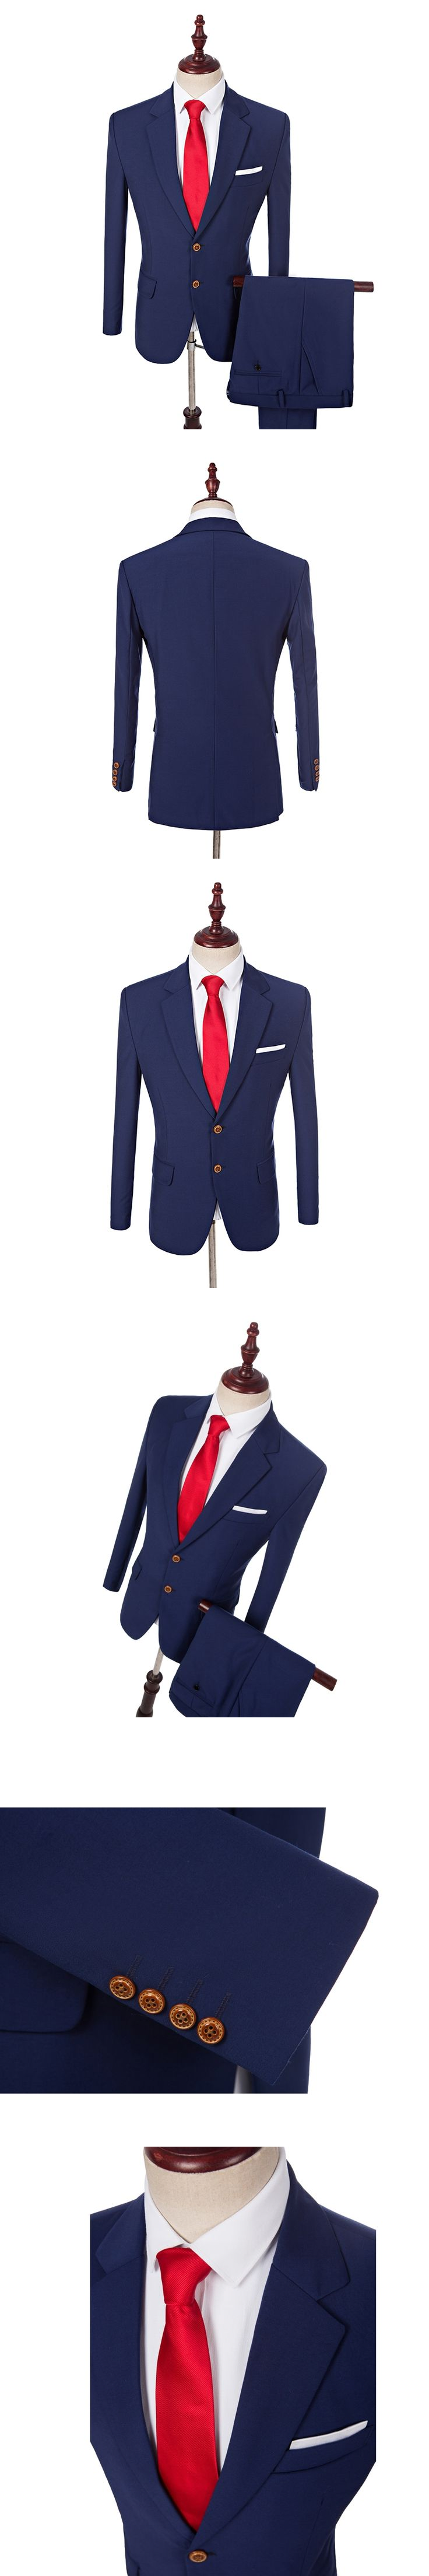 HB014 Custom Made Notch Lapel Classic Navy Blue Tuxedos Groom Wedding Prom Suits Groomsmen Best Man Suit 2 Button (Jacket+Pants)